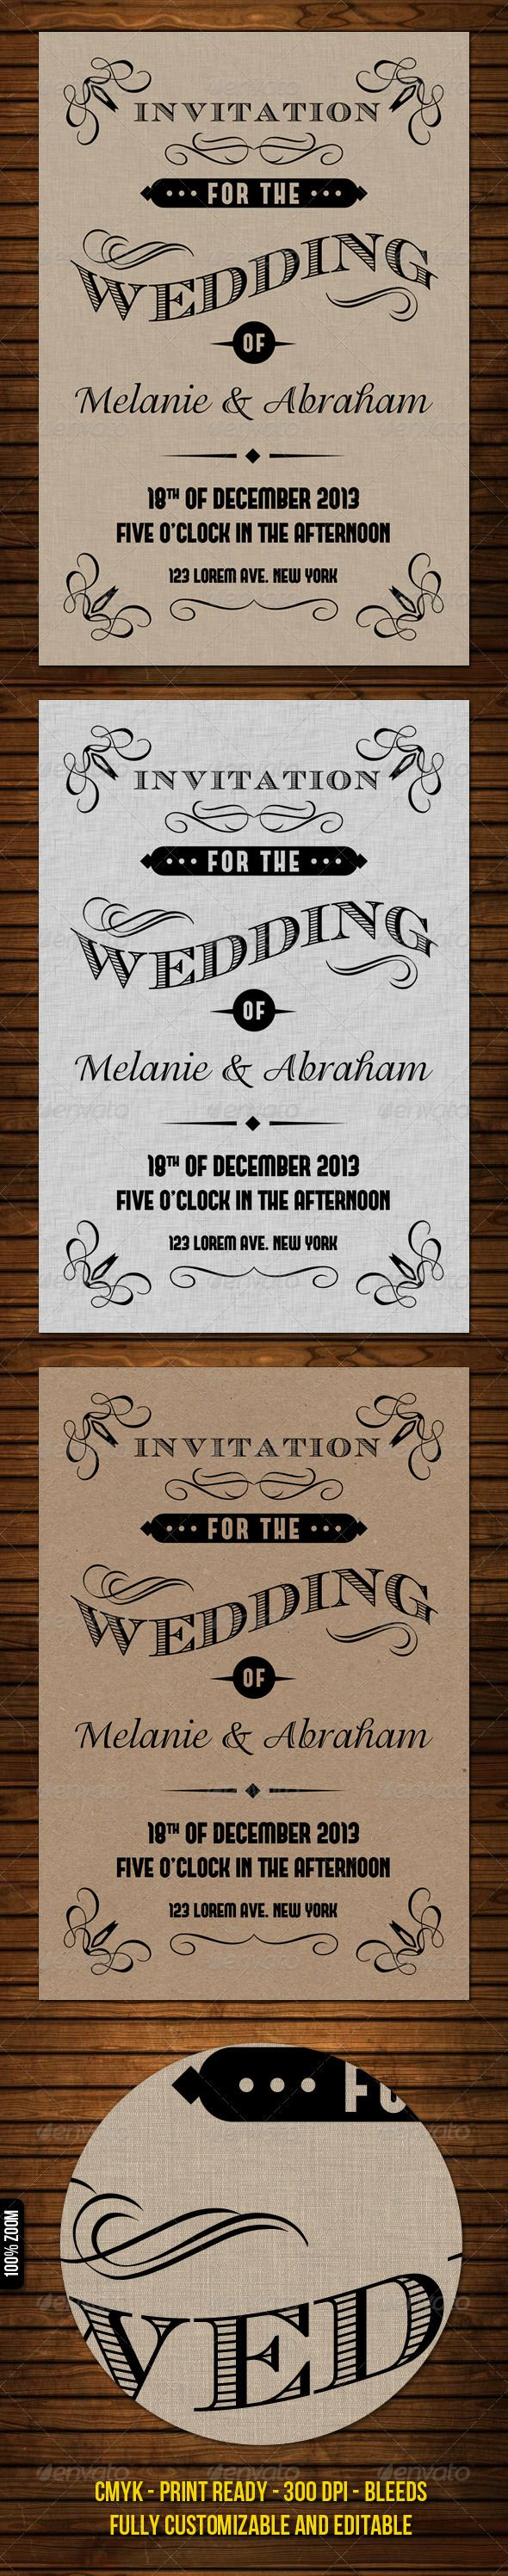 Old Vintage Wedding Invitation 27 best Wedding